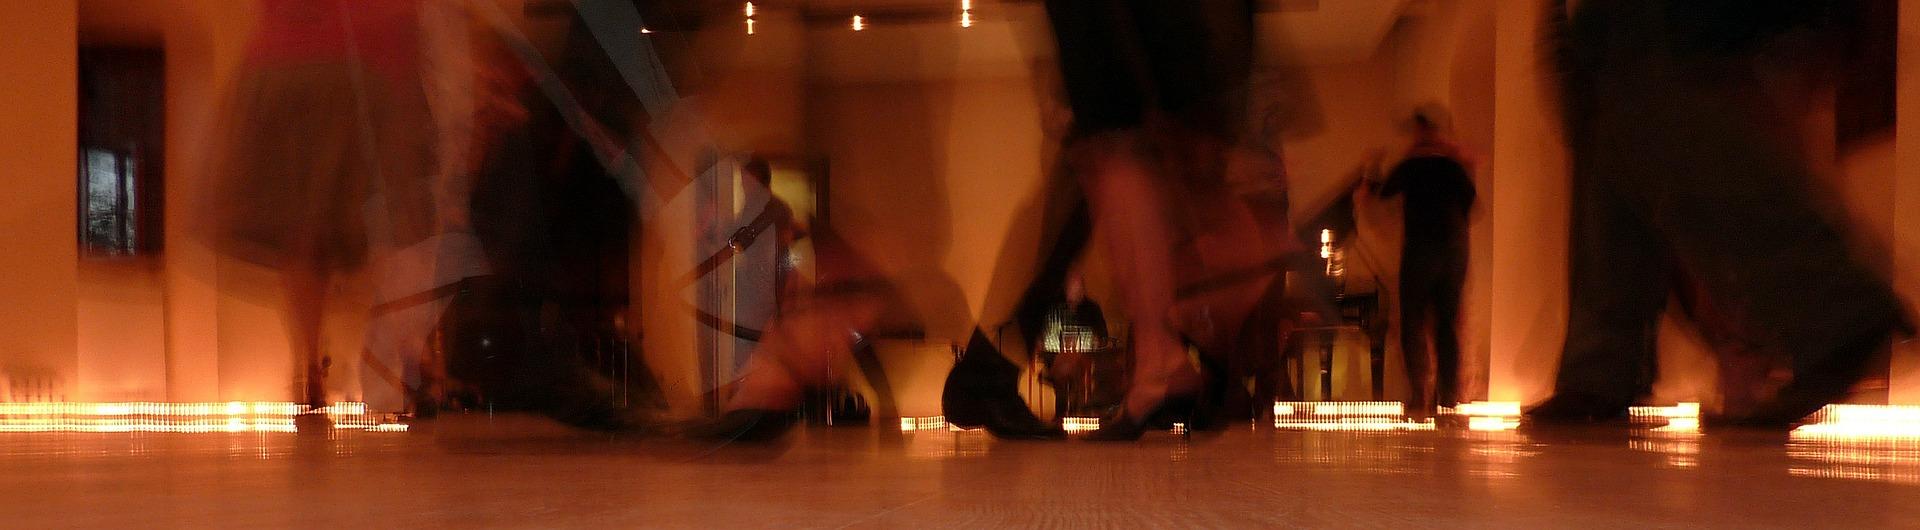 Blurred feet of dancers at a milonga